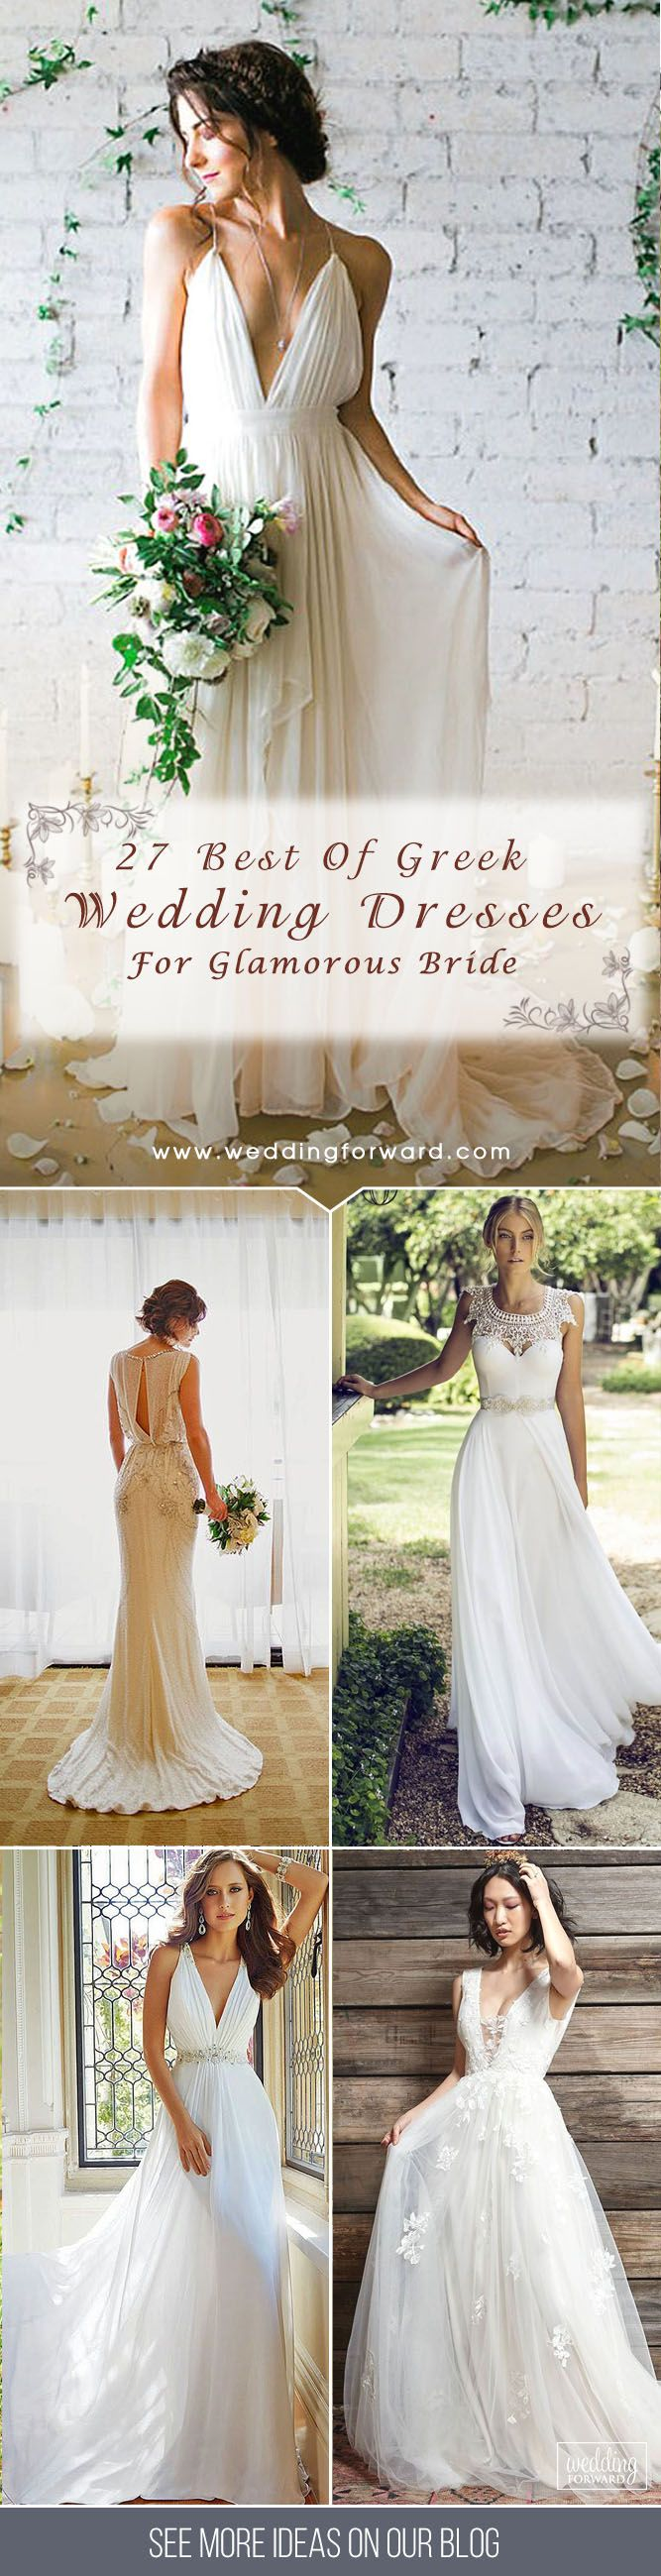 27 Best Of Greek Wedding Dresses For Glamorous Bride ? Timeless classics - this is called greek wedding dresses. See more: http://www.weddingforward.com/greek-wedding-dresses/ #wedding #dresses #greek